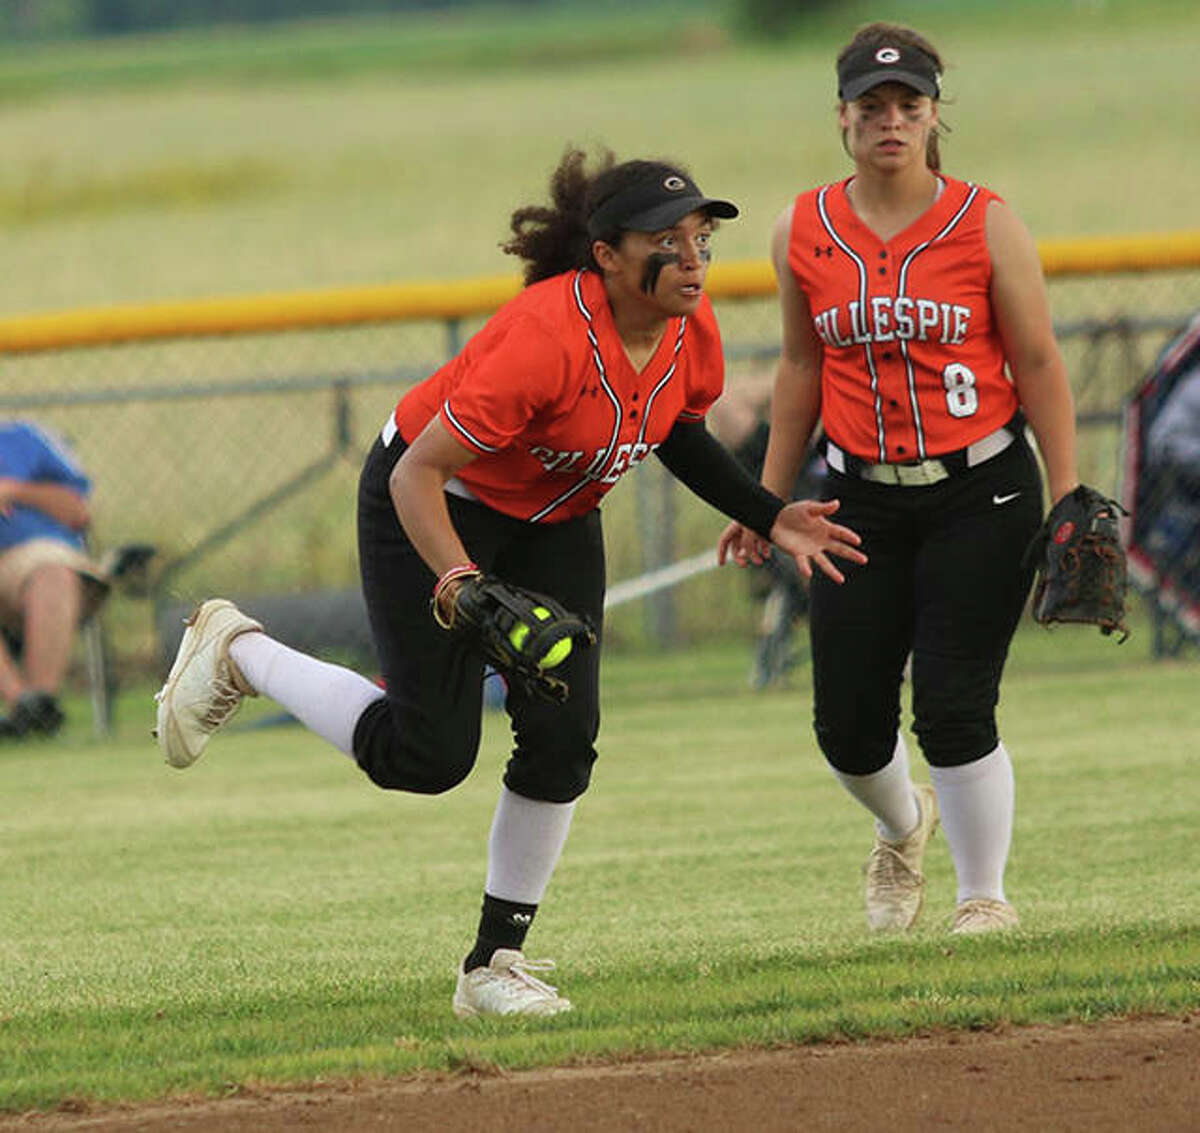 Gillespie left fielder Shelby Taylor (left) makes a running catch of a flyball blown back in just off the infield while Chloe Segarra watches the play Tuesday in a Class 2A sectional semifinal in Gillespie.